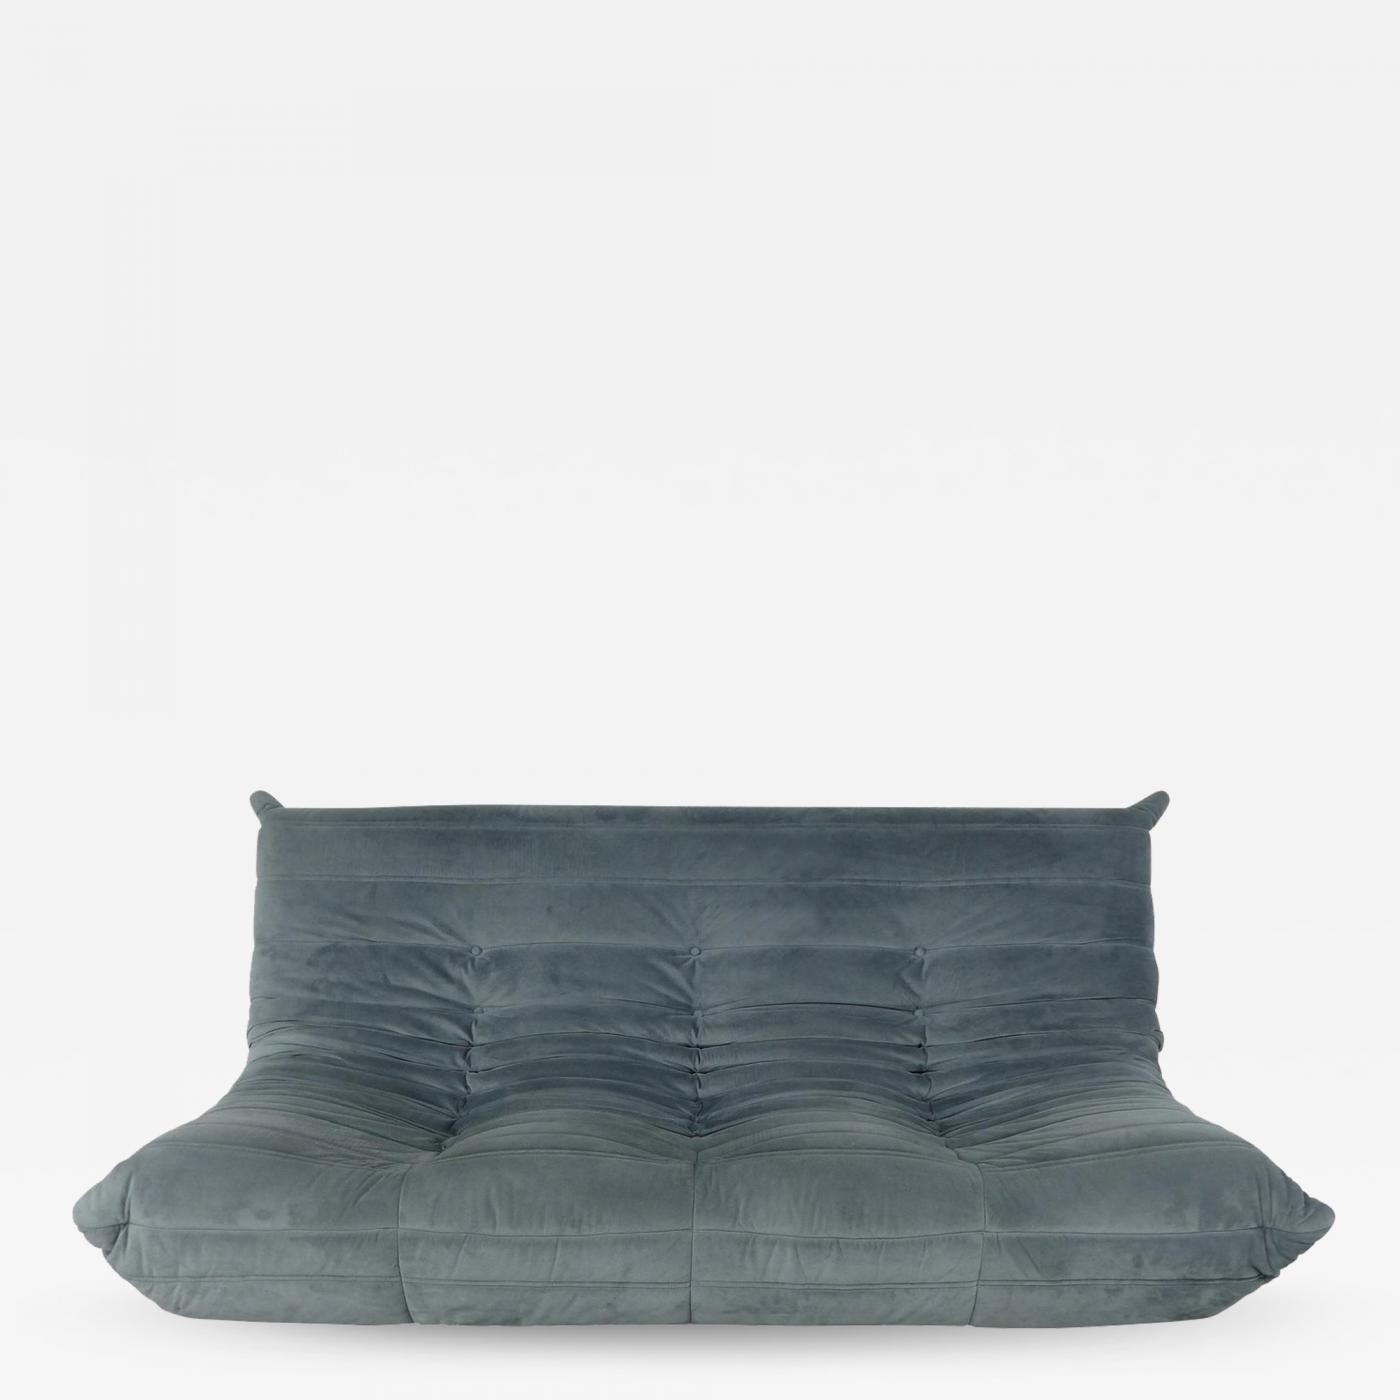 Togo Sofa Michel Ducaroy Togo Three Seat Sofa By Michel Ducaroy For Ligne Roset France